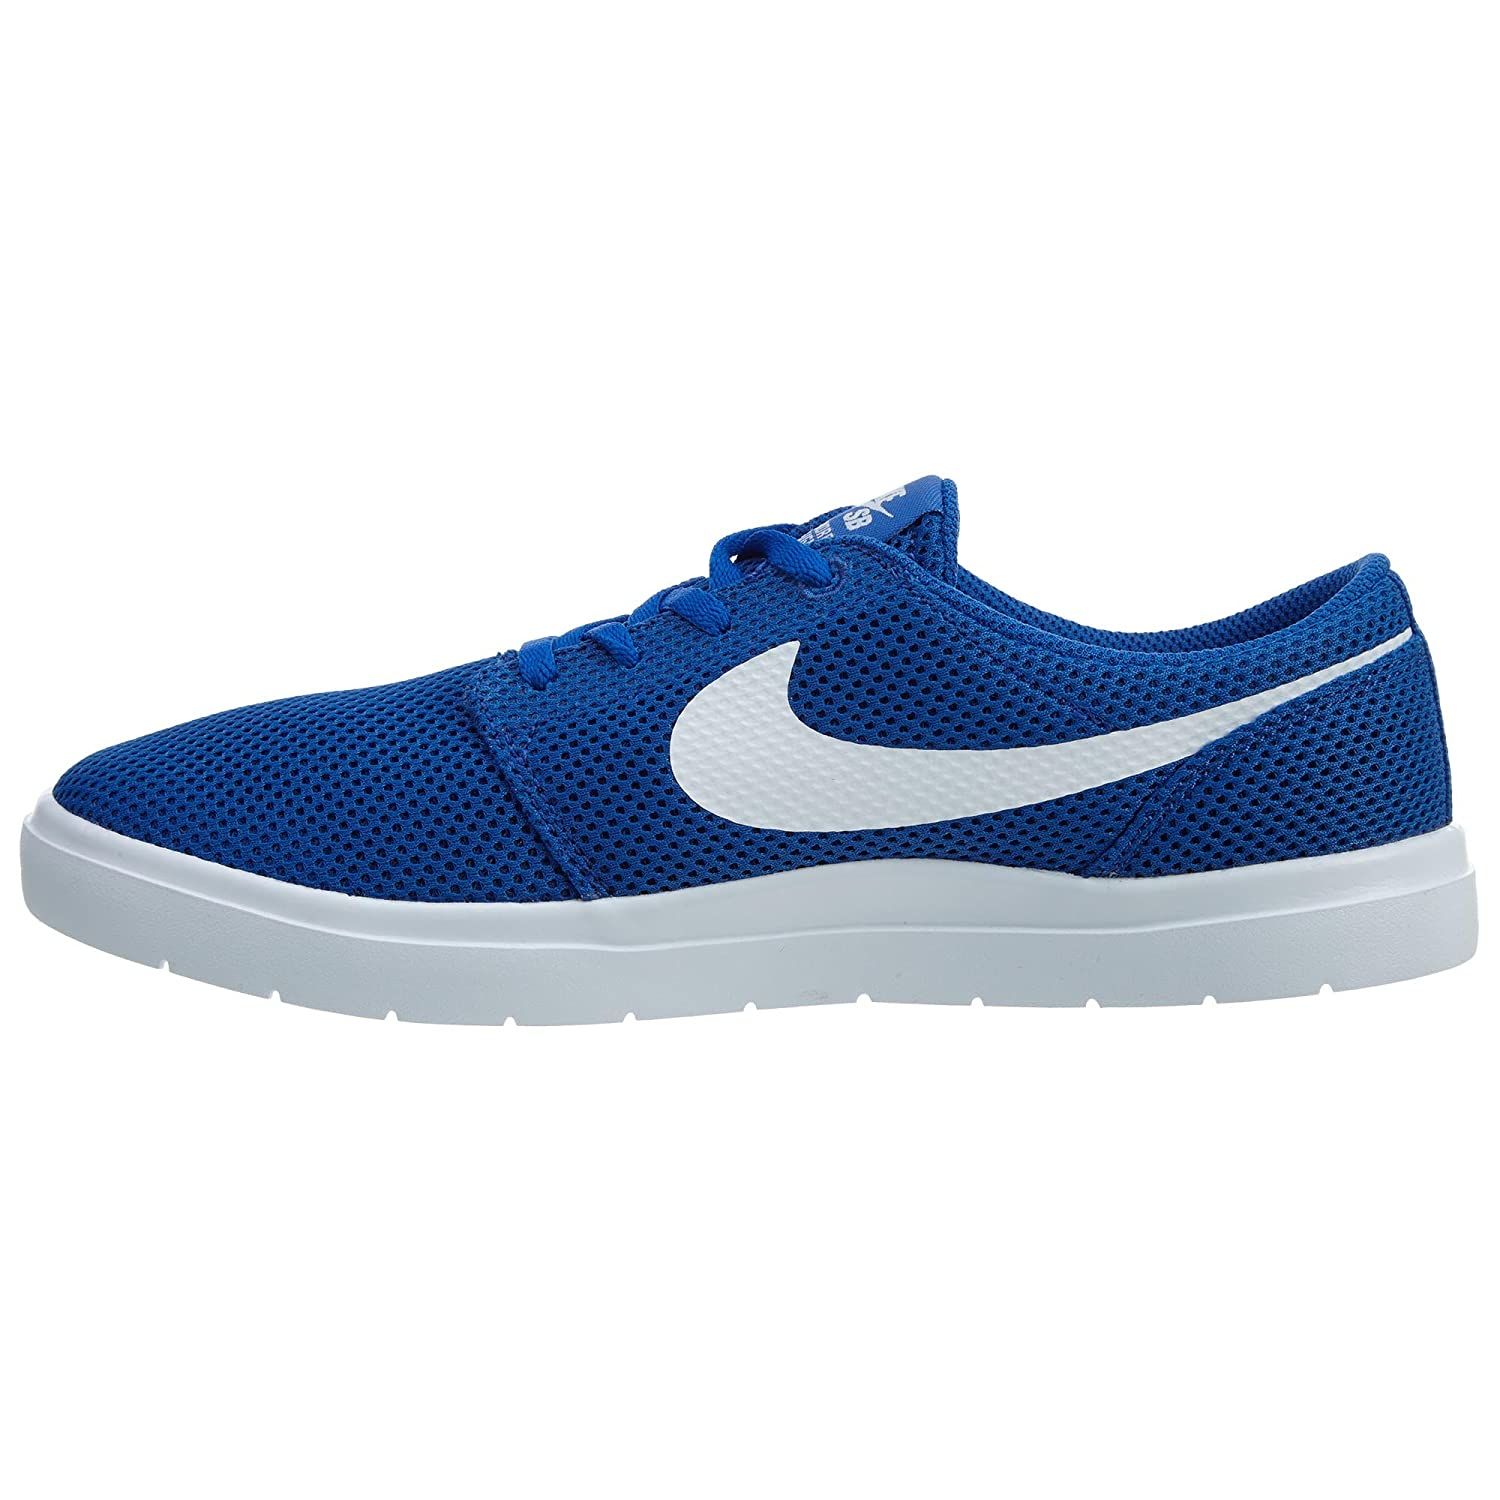 NIKE Men's SB Portmore II Ultralight Skate Shoe B01K3PK6NC 8.5 D(M) US|Game Royal White